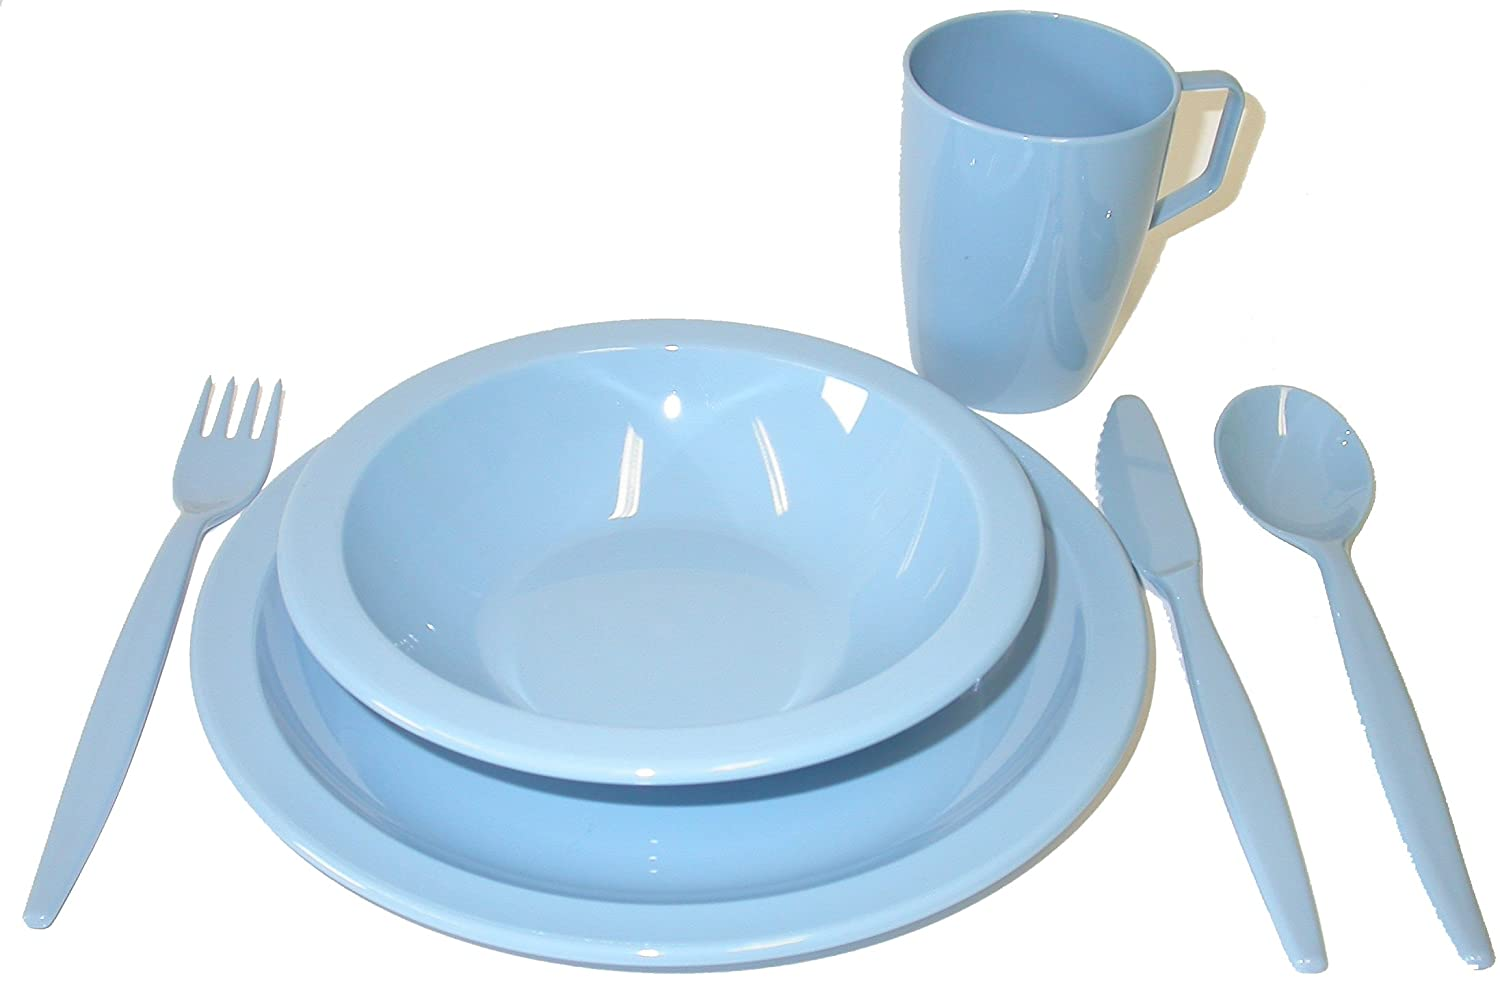 Camping Tableware Set - Plate, Bowl, Beaker and Cutlery - Summer Blue Harfield Components Ltd H8504